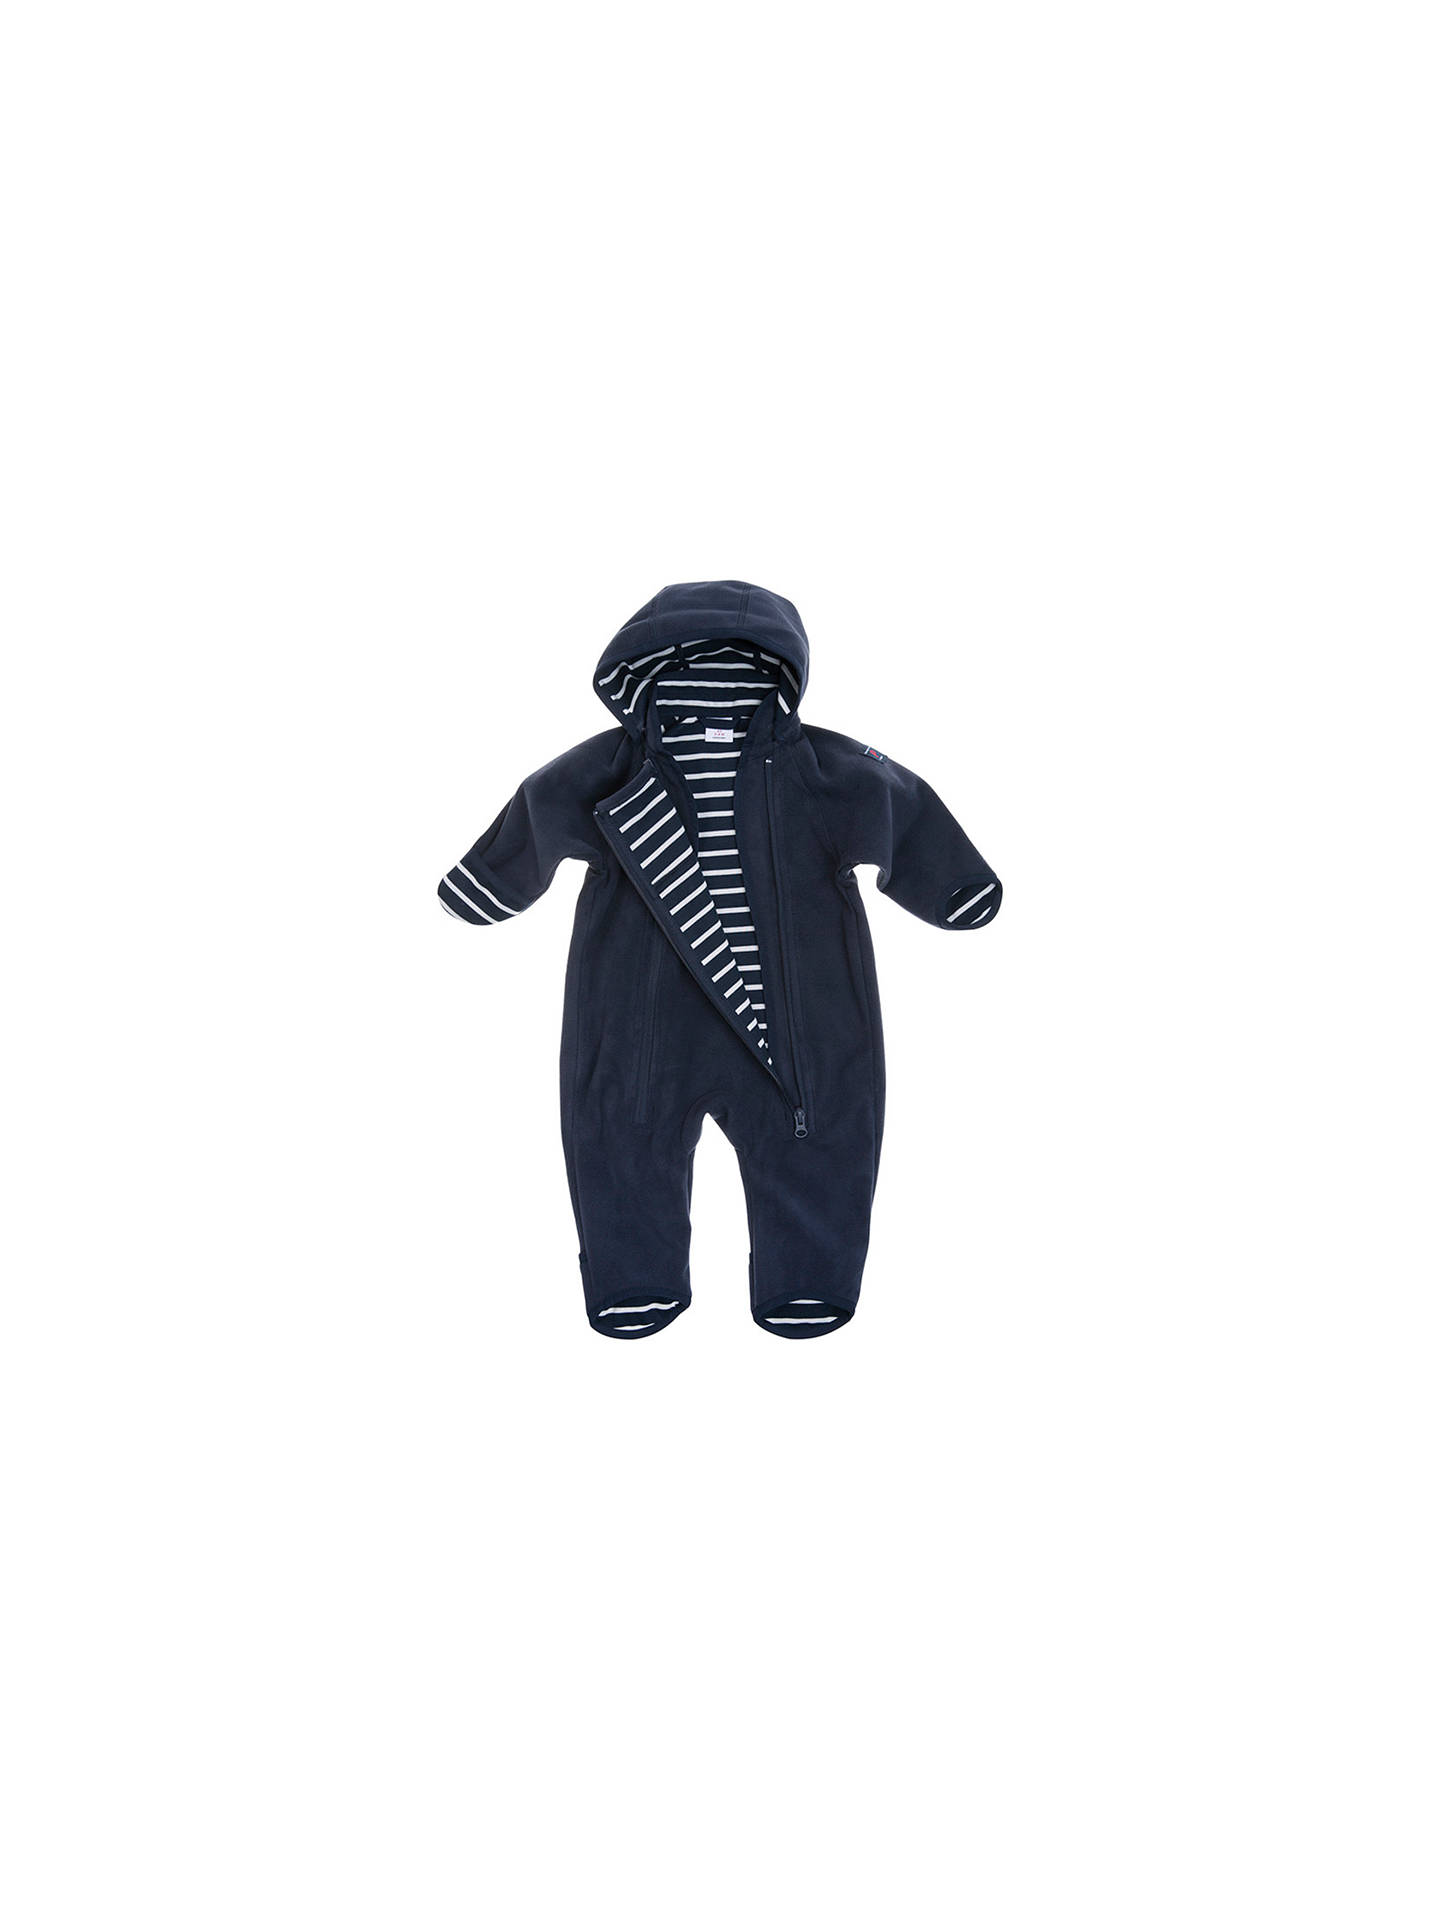 BuyPolarn O. Pyret Baby Fleece Pramsuit, Blue, 0-1 month Online at johnlewis.com